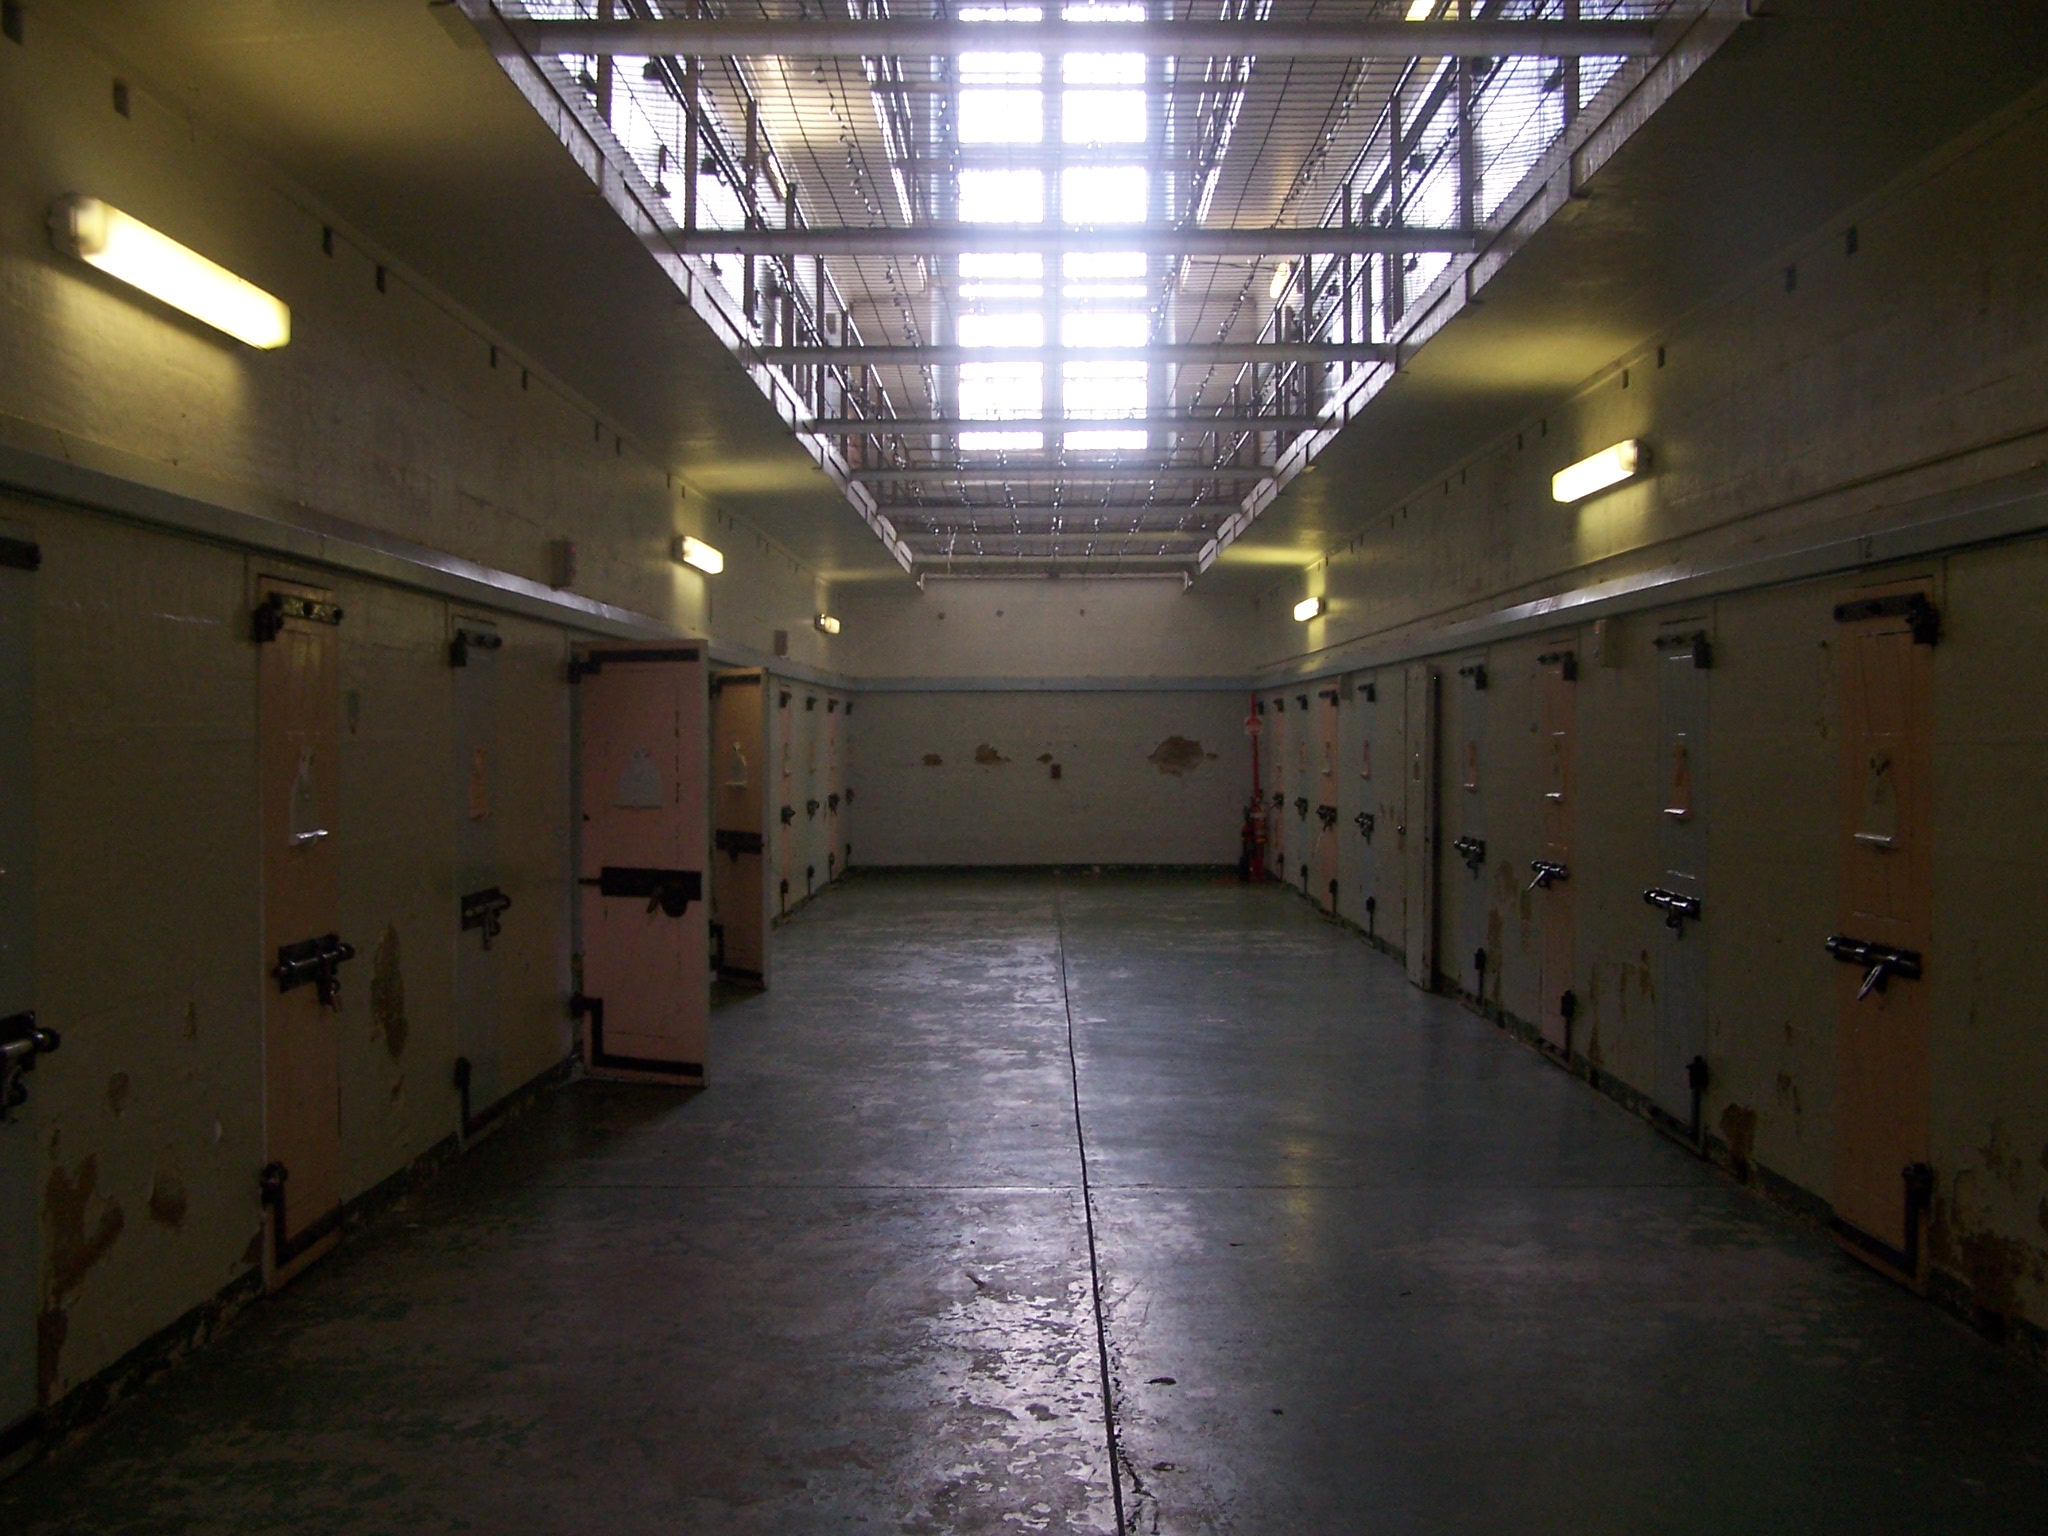 Lower cells, MG 08001.JPG